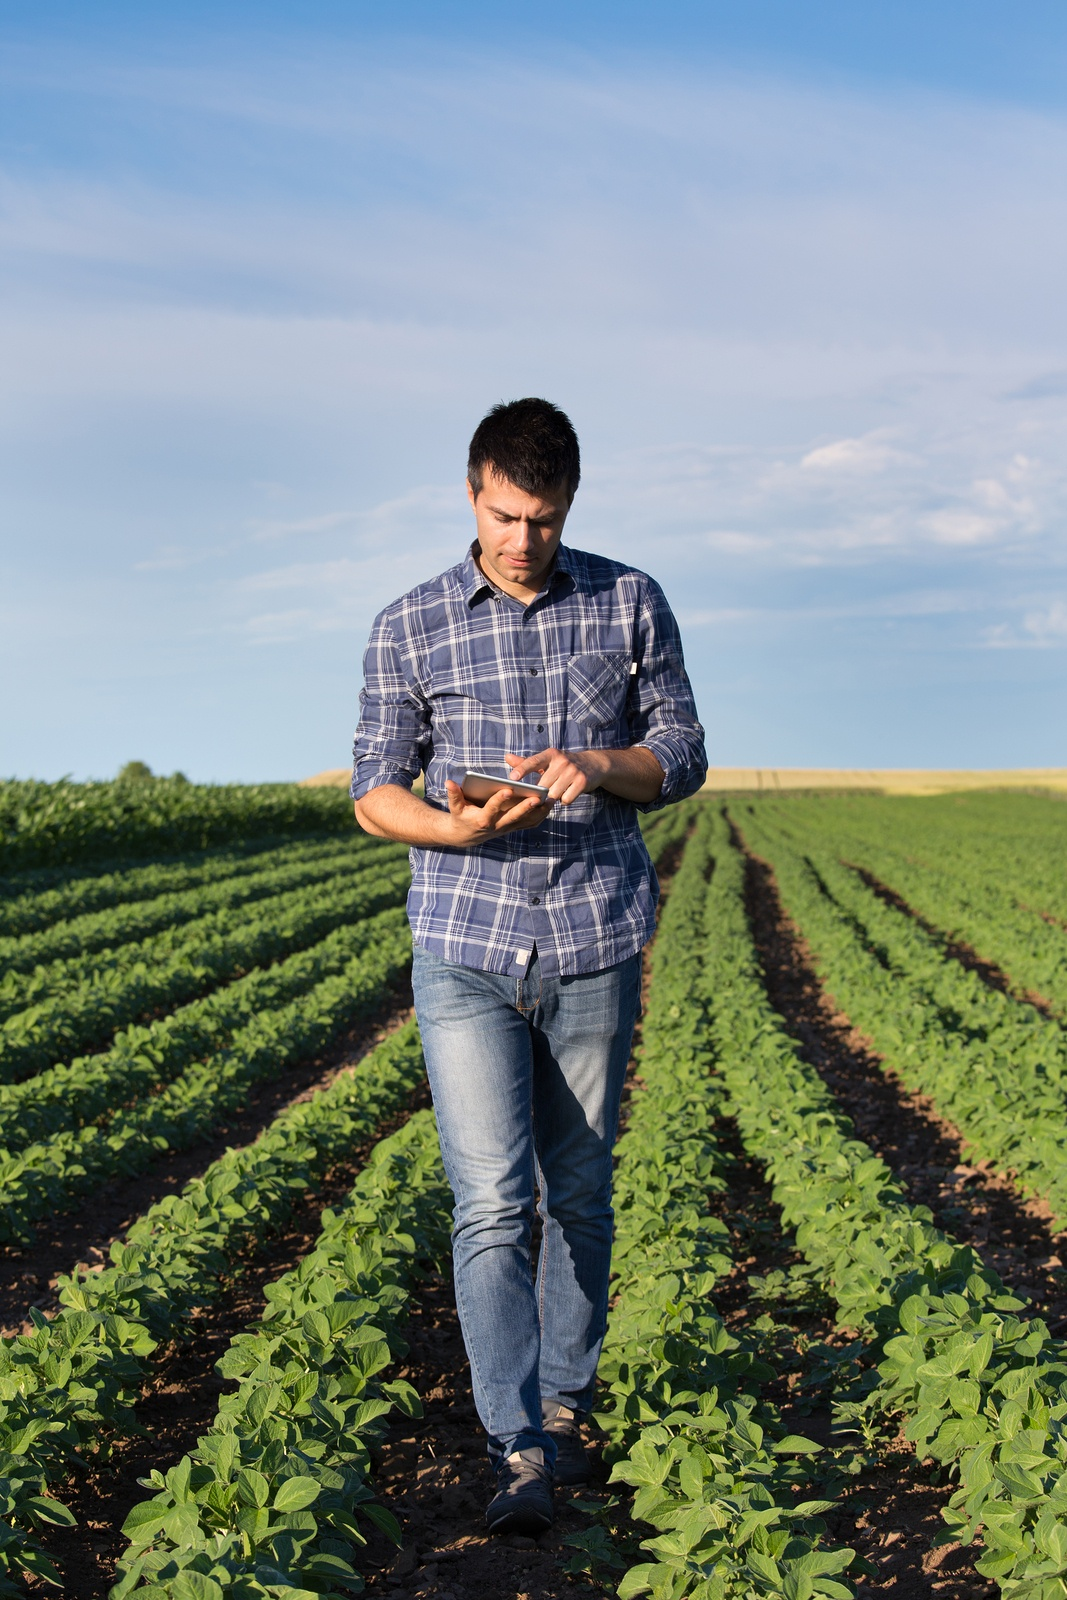 bigstock-Farmer-With-Tablet-In-Soybean--194978200